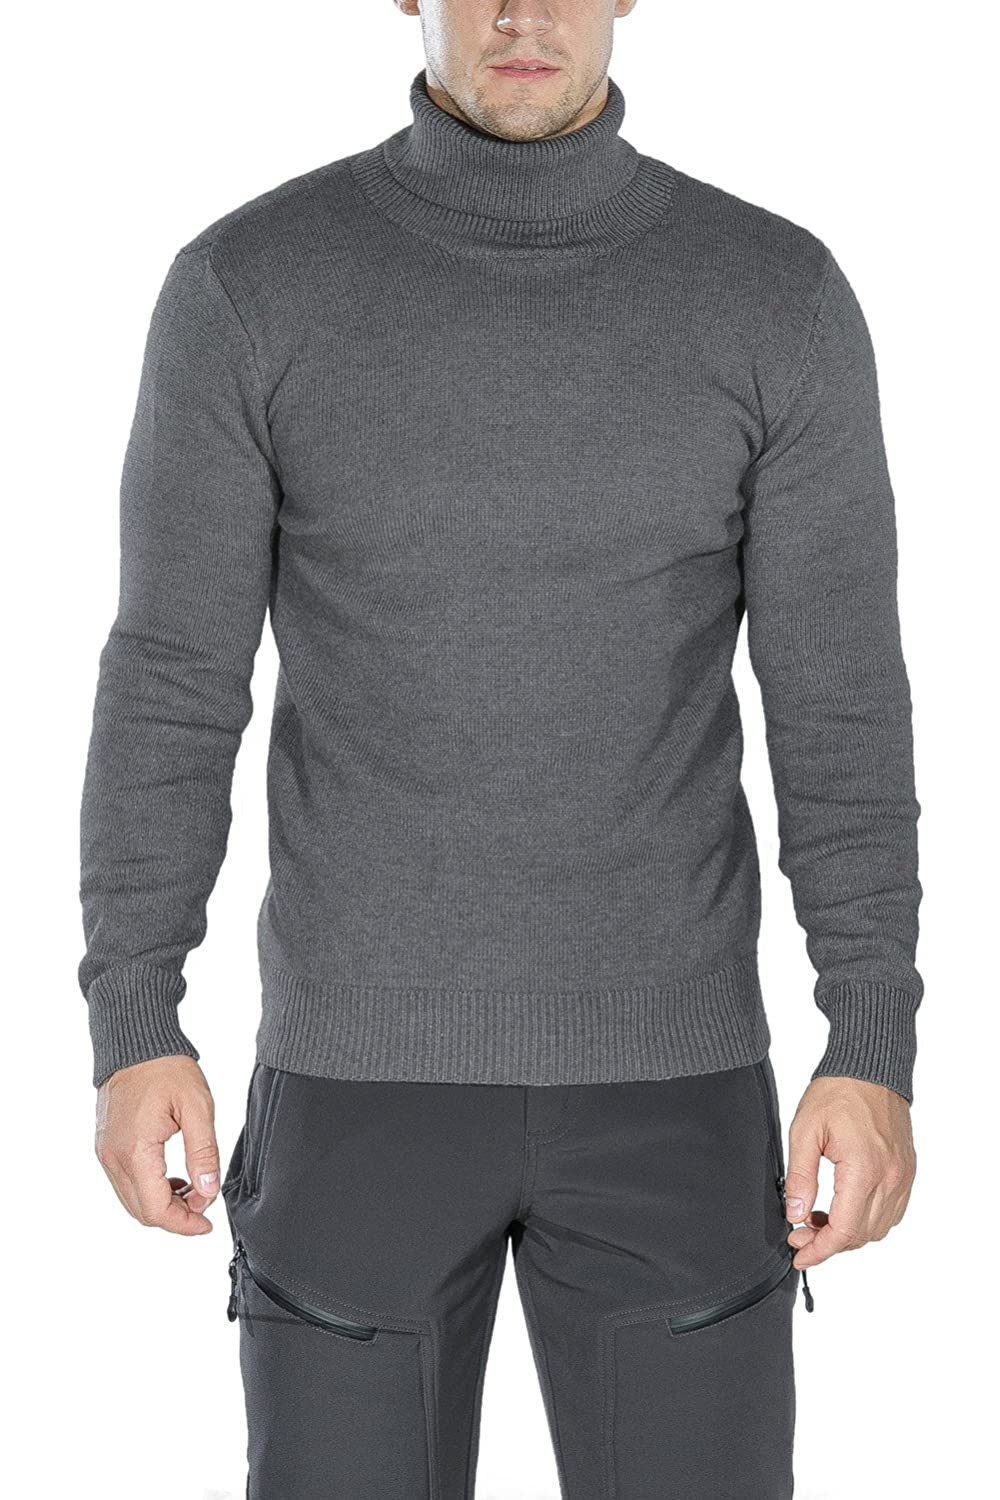 Rocorose men Long Sleeves High neck Plain Classic Casual jumper RR7218033